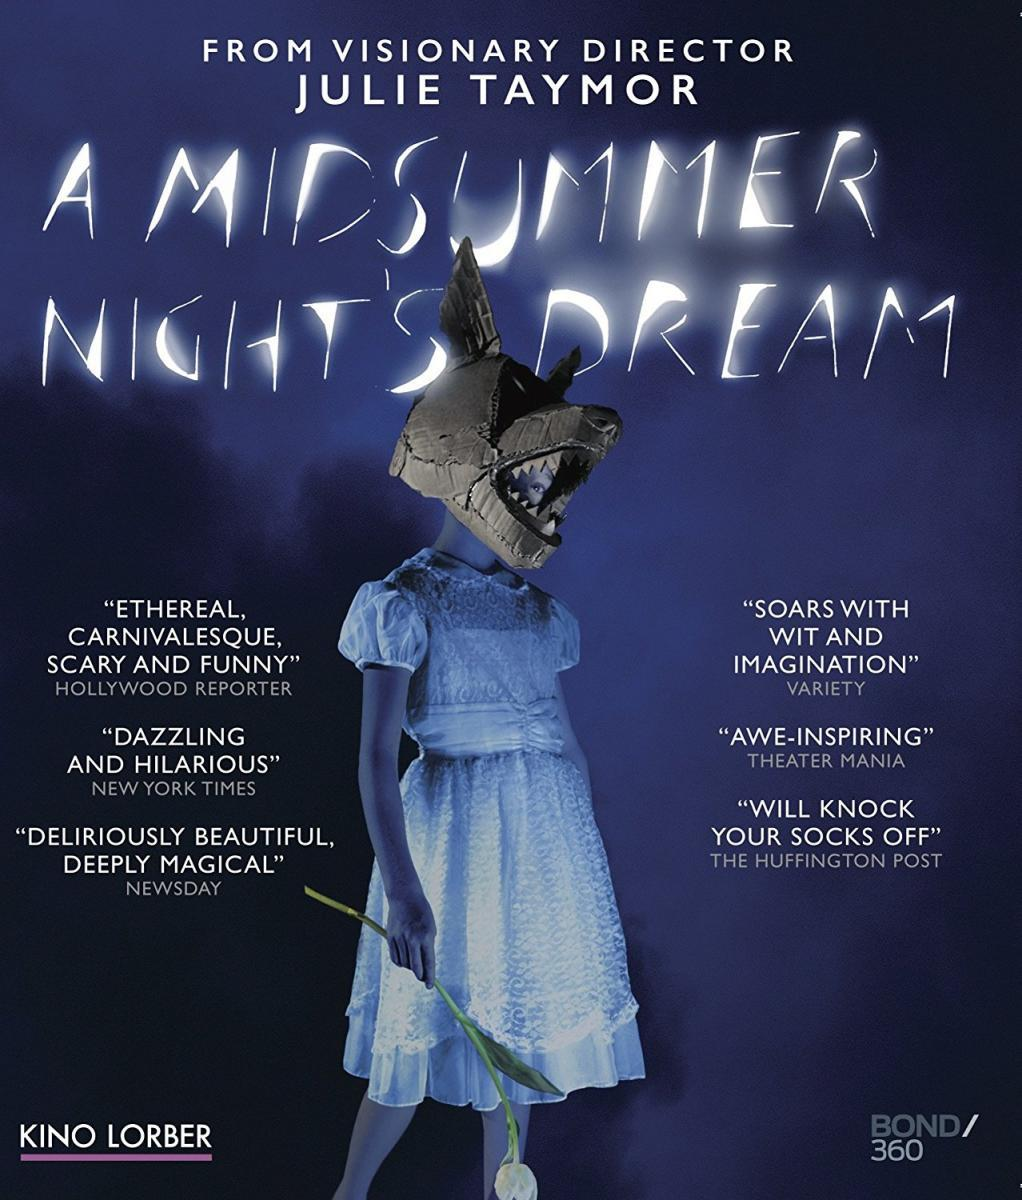 http://pics.filmaffinity.com/a_midsummer_night_s_dream-575309618-large.jpg